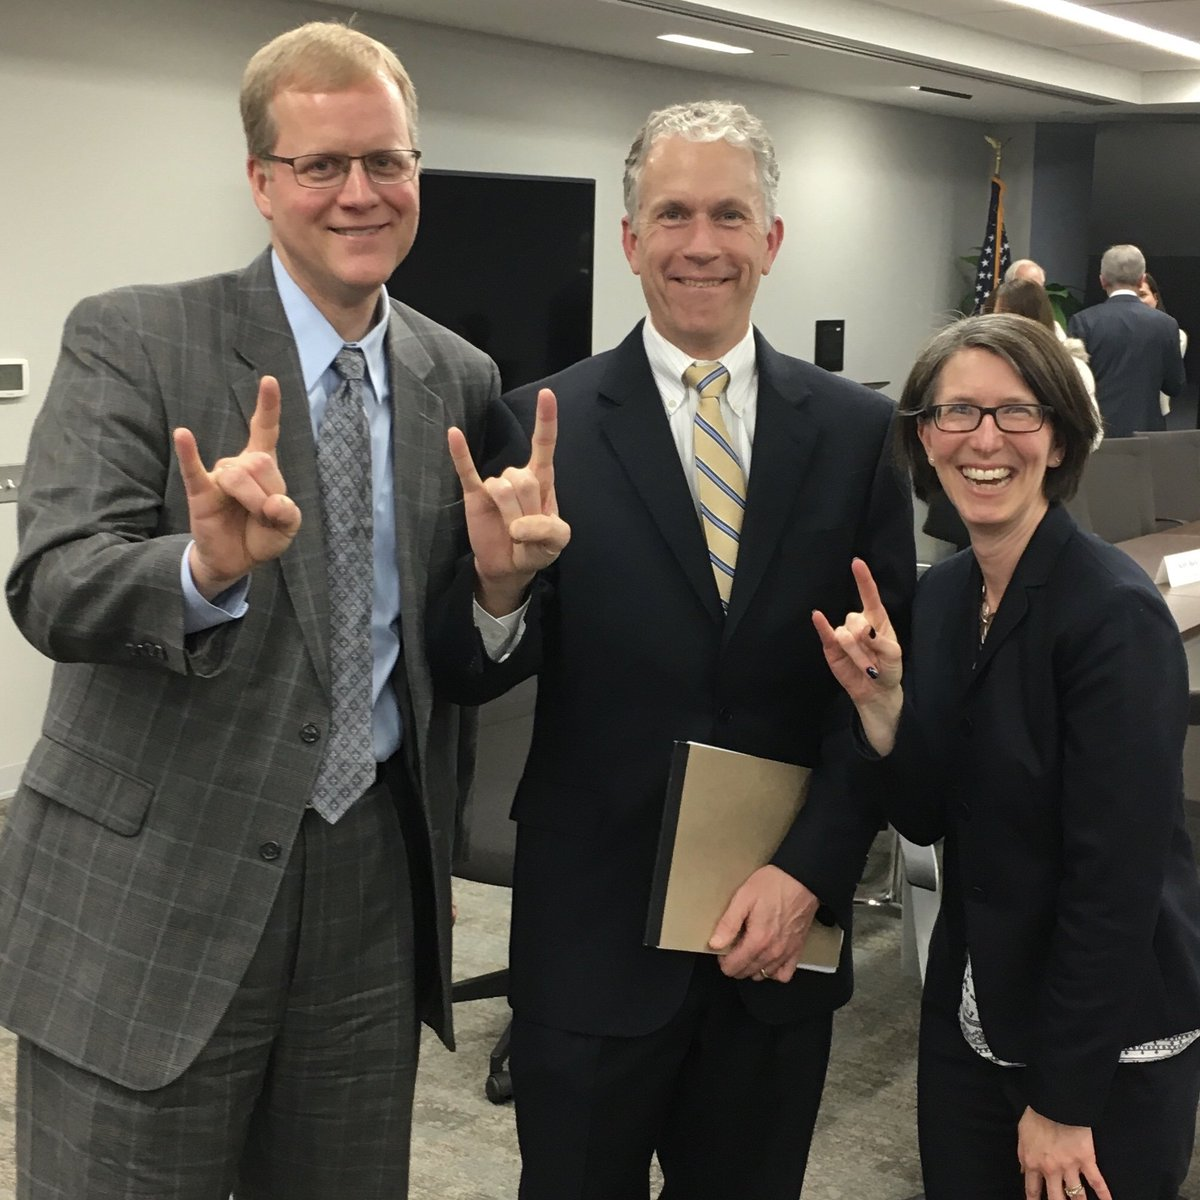 Brent Riddle (MPAff '98), Wyatt Shields (MPAff '98) and Wendy Block Sanford (MPAff '01) at a regional transportation meeting in Northern Virginia